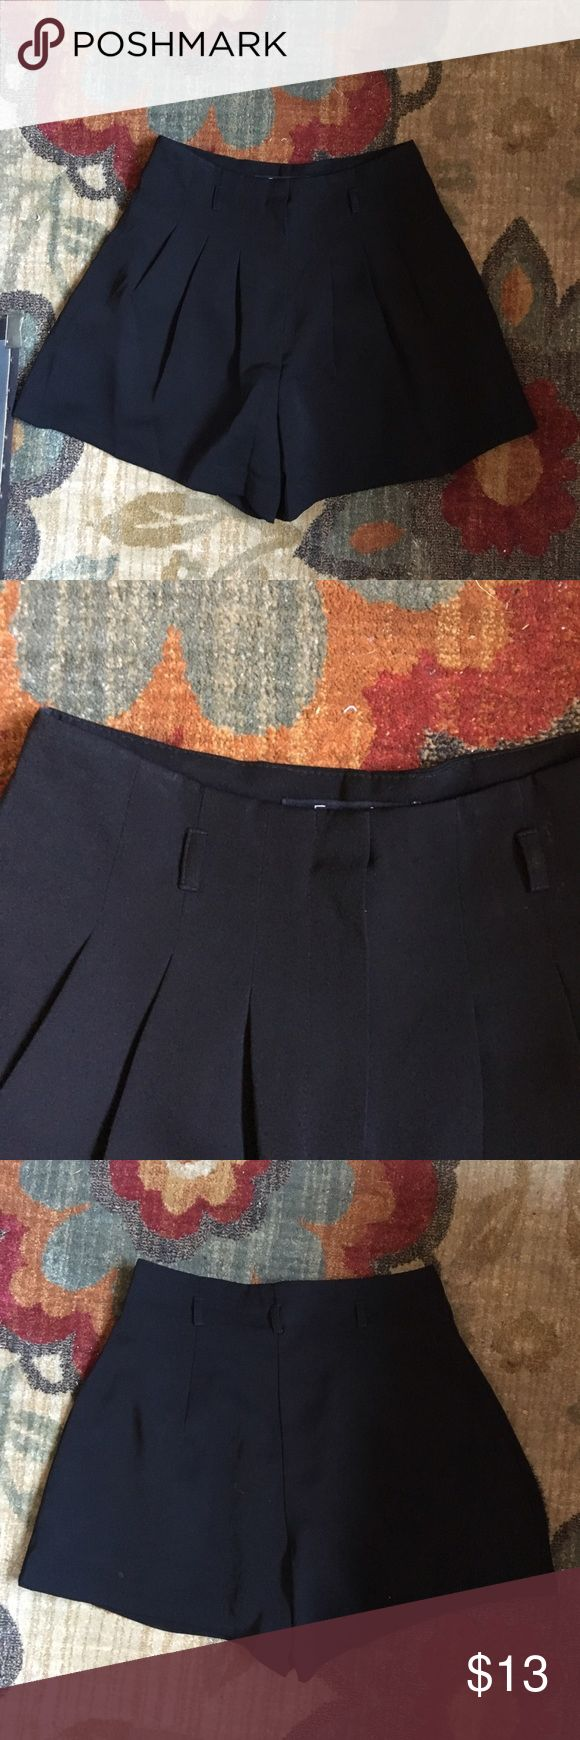 SALE Black tailored high-waisted culotte shorts 4th of July SALE through the weekend! Brand: Forever 21. Size XS. Such a classy summer short! NO SWAPS. #black #tailored #highwaisted #culotte #shorts #forever21 Forever 21 Shorts